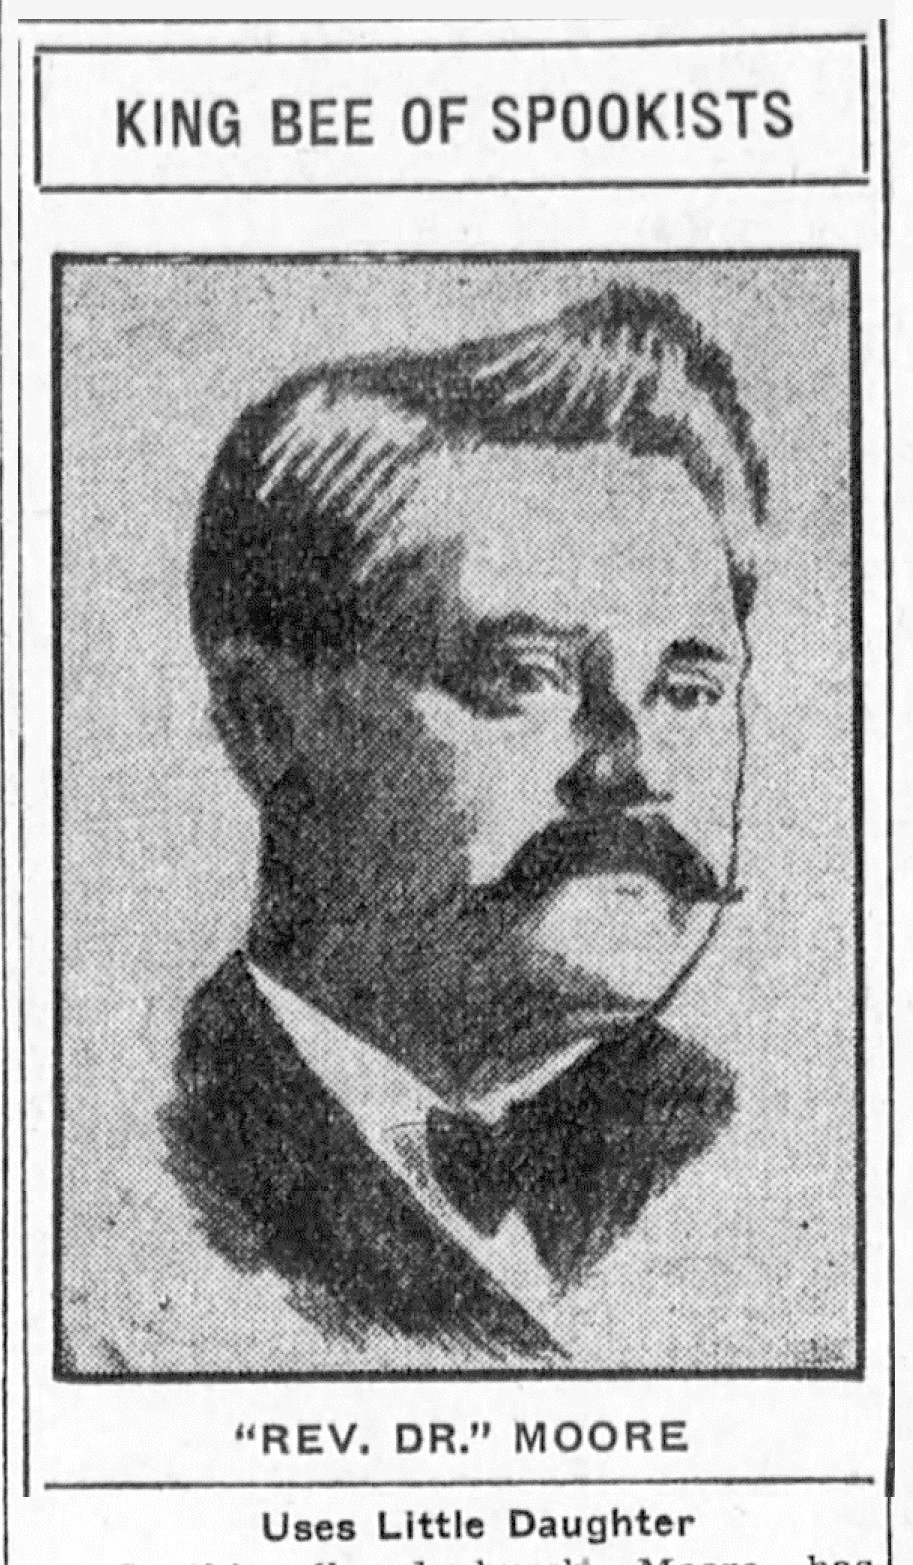 "Editor. (May 29, 1907). Police Raid Two Dens of Spookists - Fakers Caught with the ""Goods"" on Them, re. clairvoyant and medium Rev. Dr. Hugh Robert ""Sinclair"" Moore (1871-1944). Vol. XXXIV, No. 240, pp. 1, 12. Los Angeles Herald."